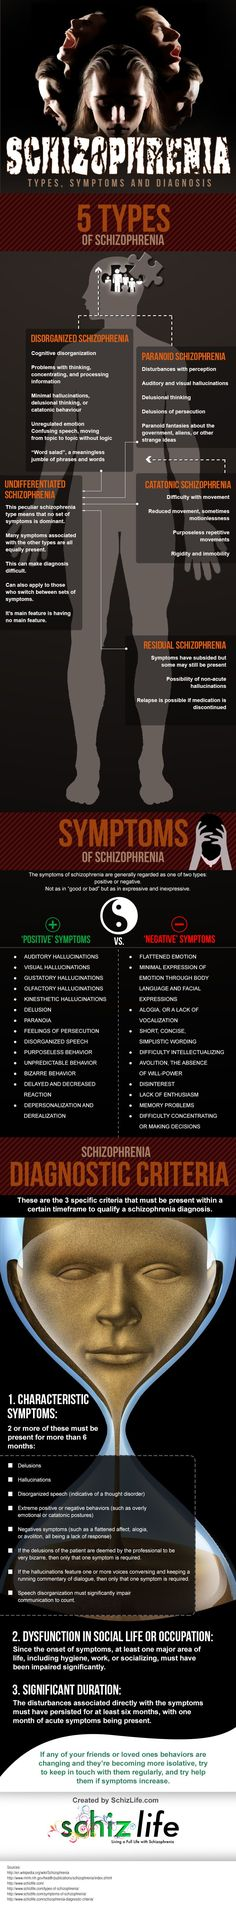 http://www.schizlife.com/schizophrenia-infographic-2/  Schizophrenia Infographic Types, Symptoms, and Diagnosis